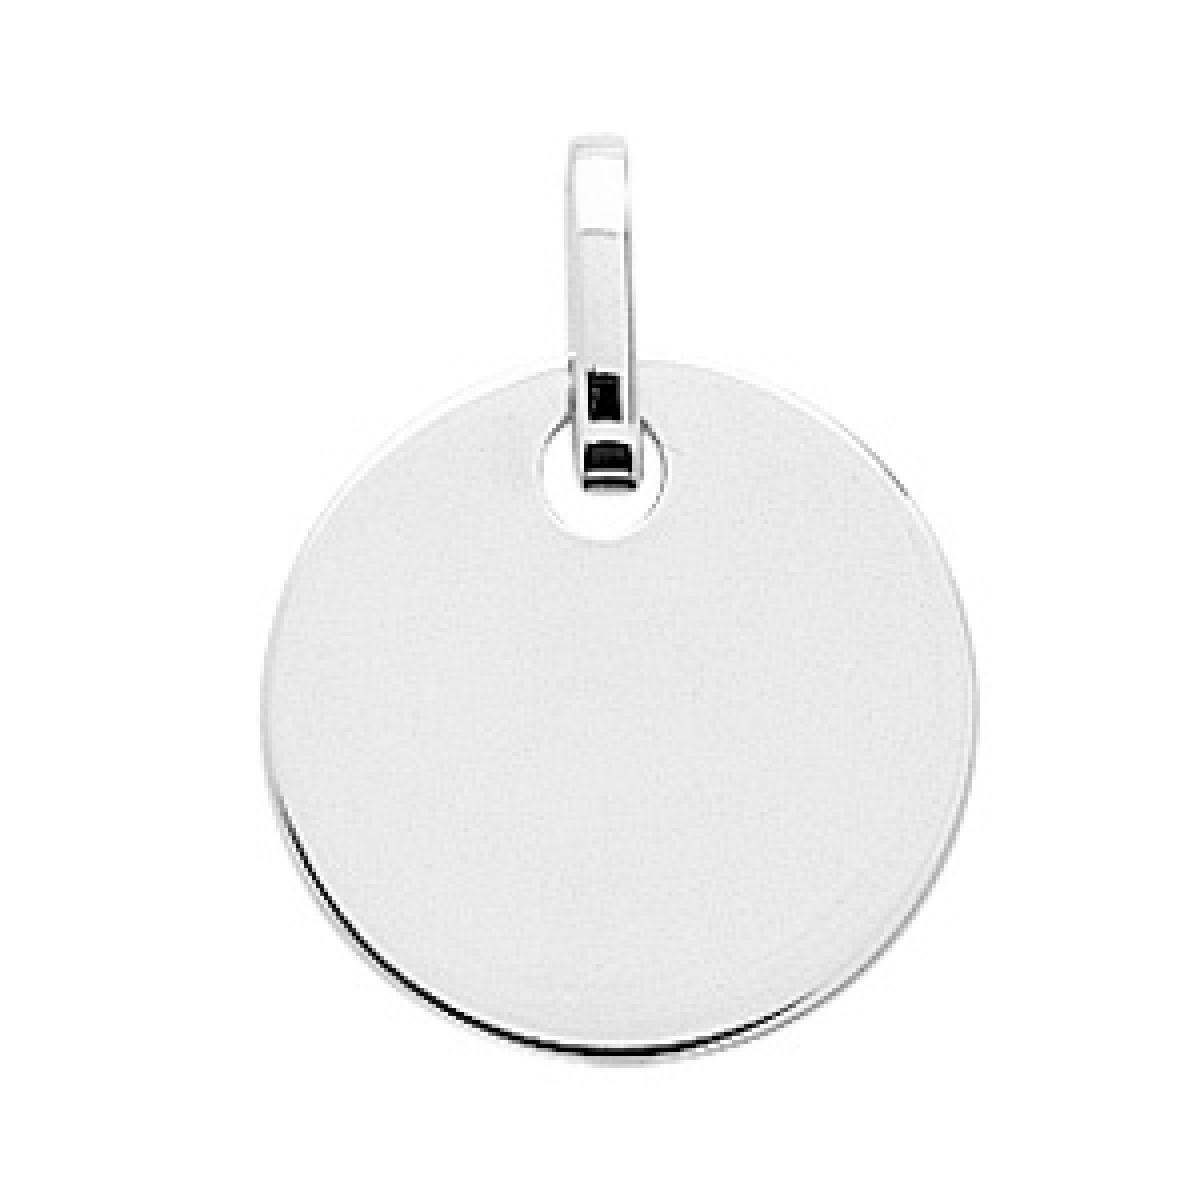 PLaque ronde or 750/1000 (18K) blanc